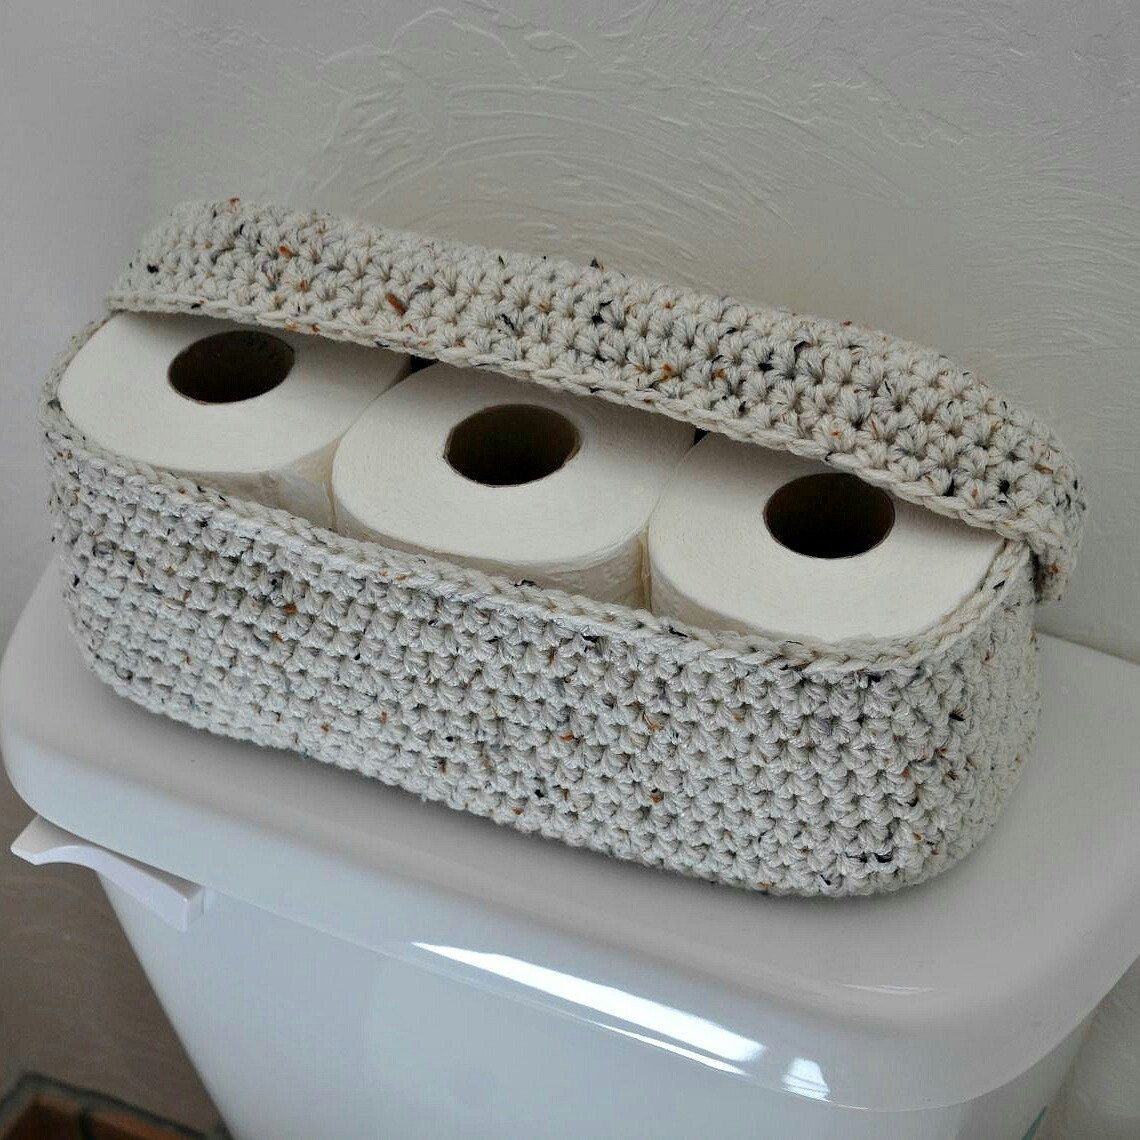 Another Way To Organize And Tidy Up The Bathroom Crochet Home Decor Crochet Home Crochet Bag